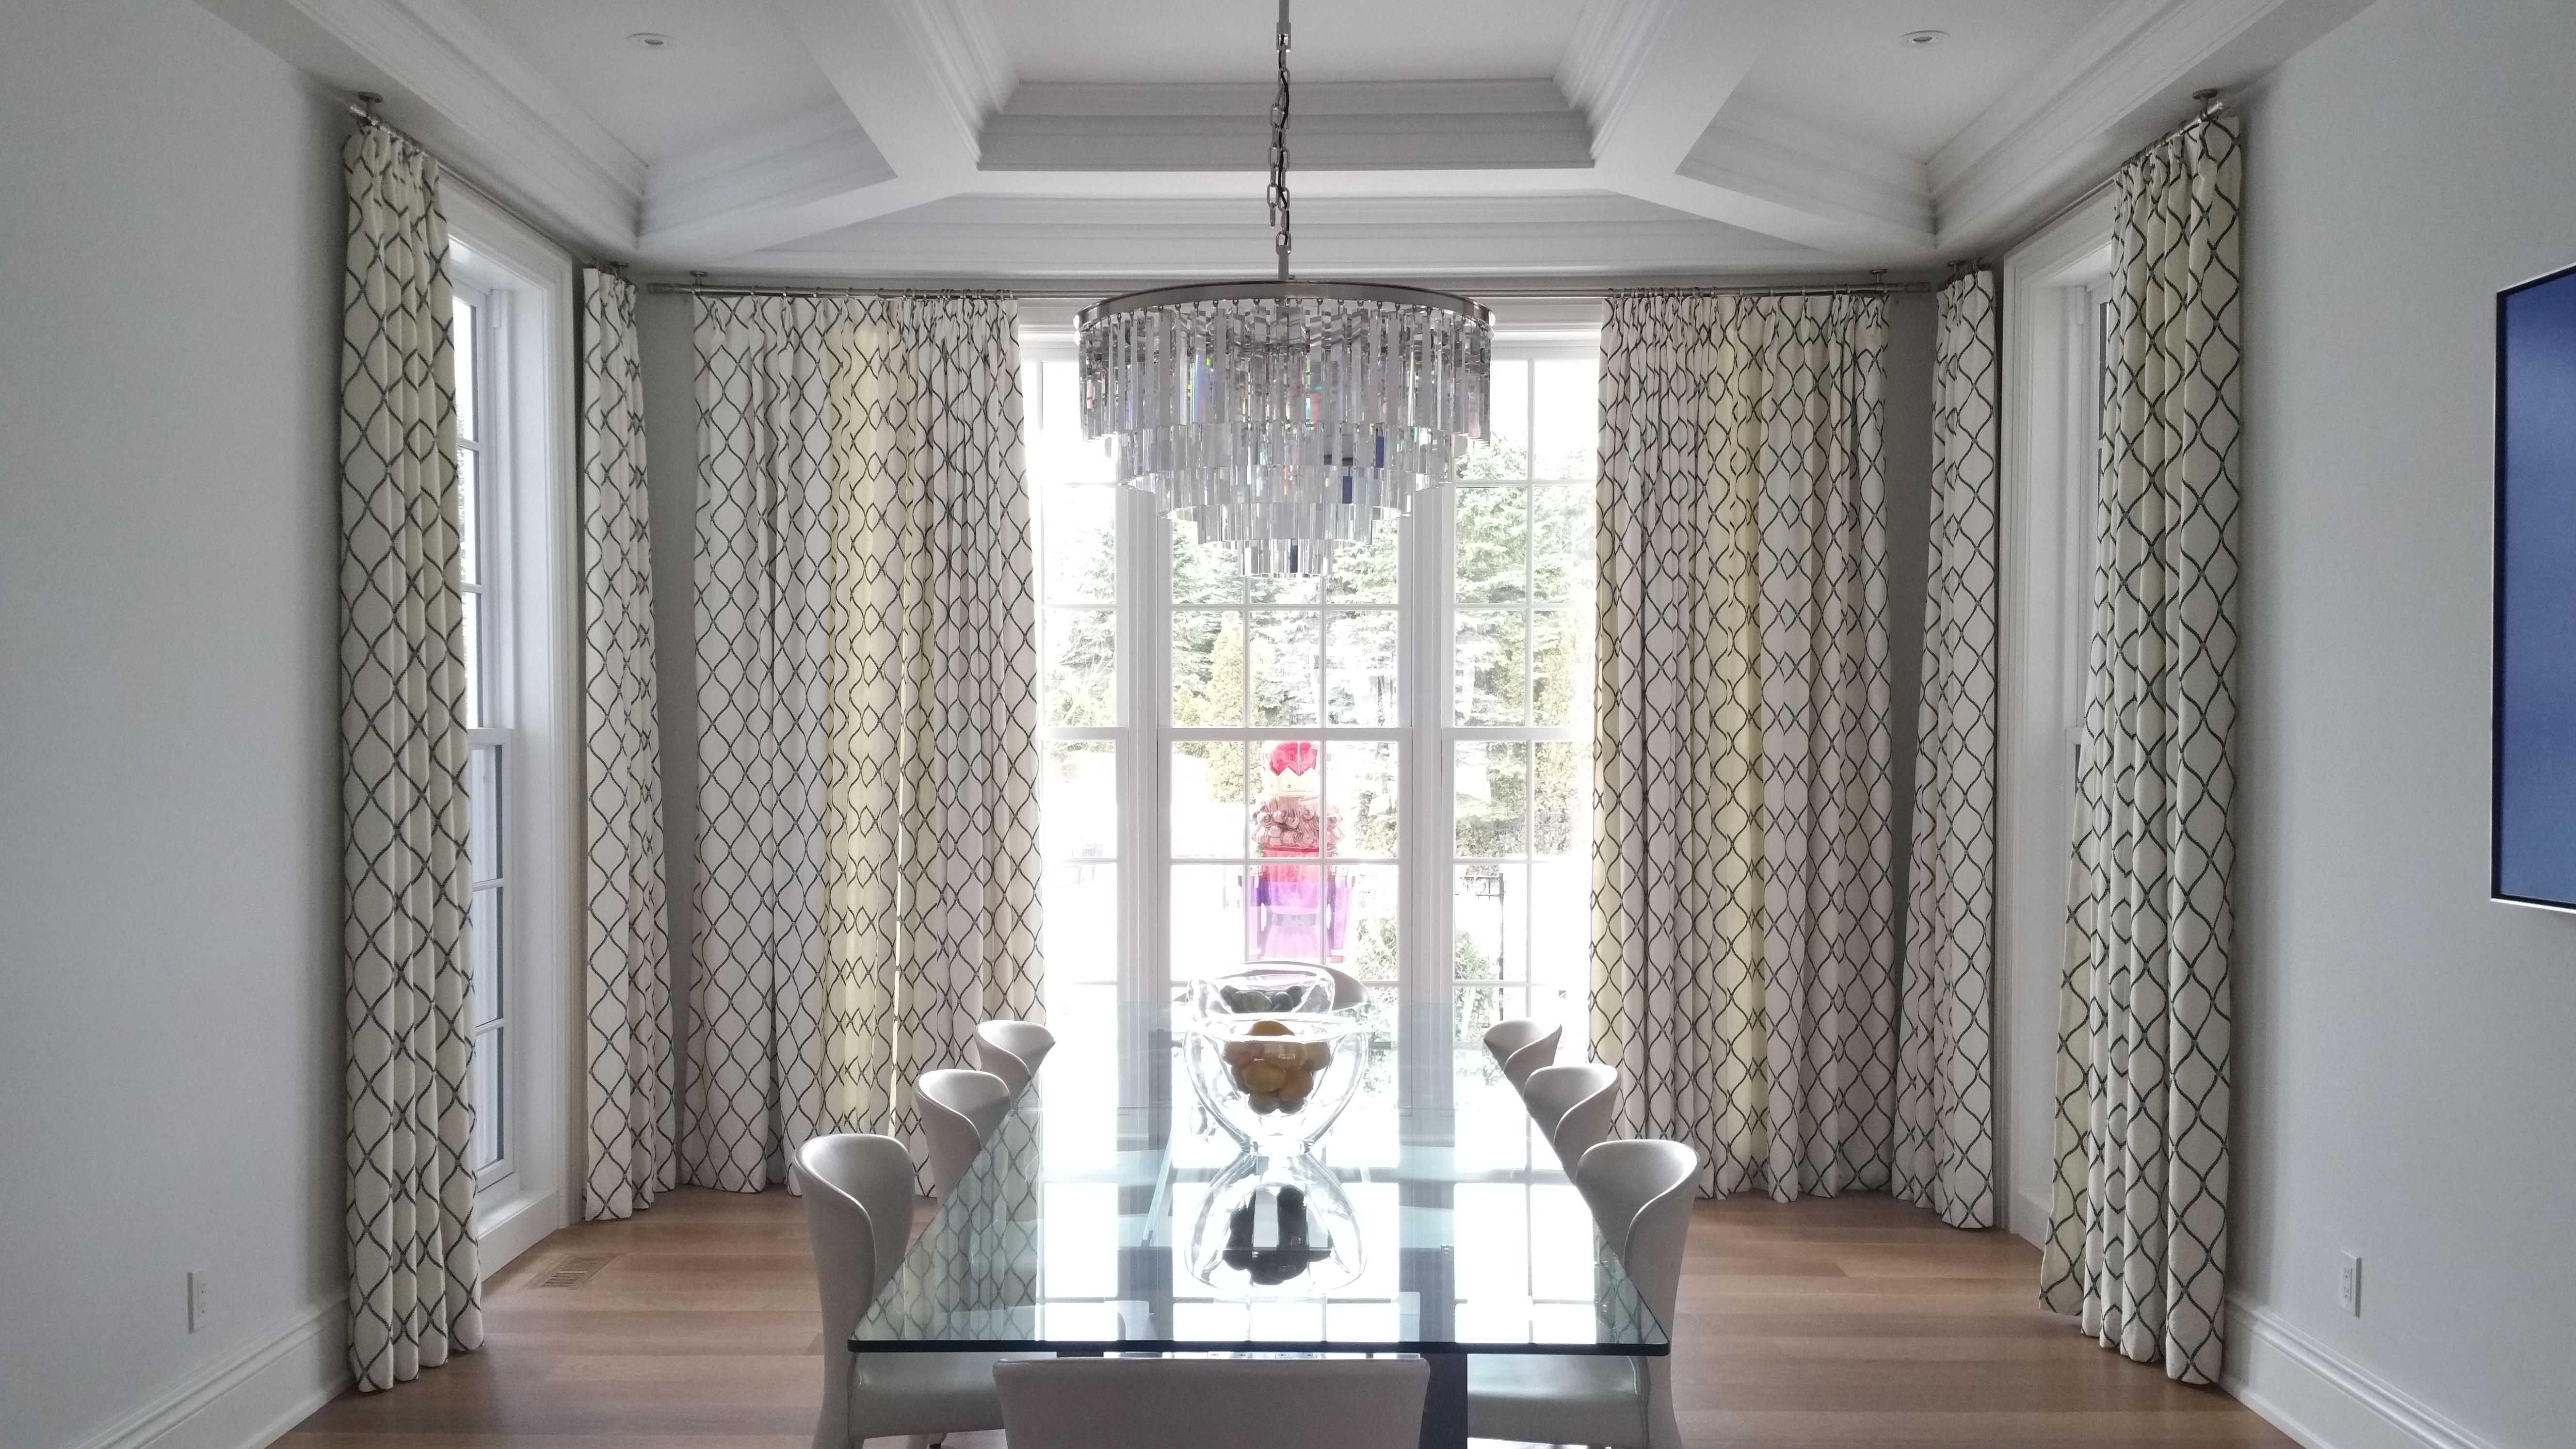 Make A Statement And Create A Backdrop For Your Dining Space With Custom Embroidered Drapery Panel Dining Room Curtains Dining Room Drapes Dining Room Windows